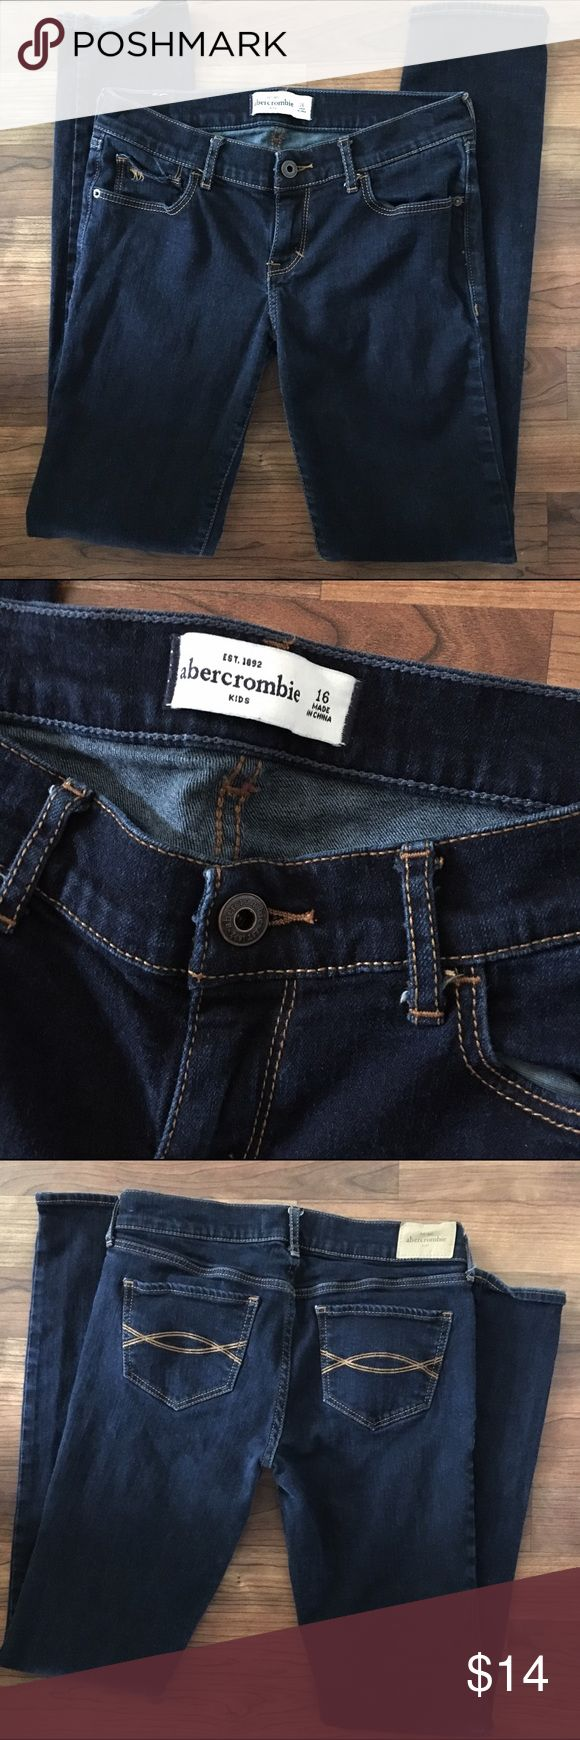 "Abercrombie Girls Size 16 Skinny Jeans EUC These are like new! I bought for my daughter and she still refuses to wear denim. They are Abercrombie girls size 16 Skinny Jeans in a dark rinse. Denim is 99% cotton, 1% spandex and the waist measures 14"" across laying flat with an inseam of 29.5"". They were never worn, just brought home and washed and she would not wear them. Thank you for looking! ☺ 🚫trades 🚫lowball offers abercrombie kids Bottoms Jeans"